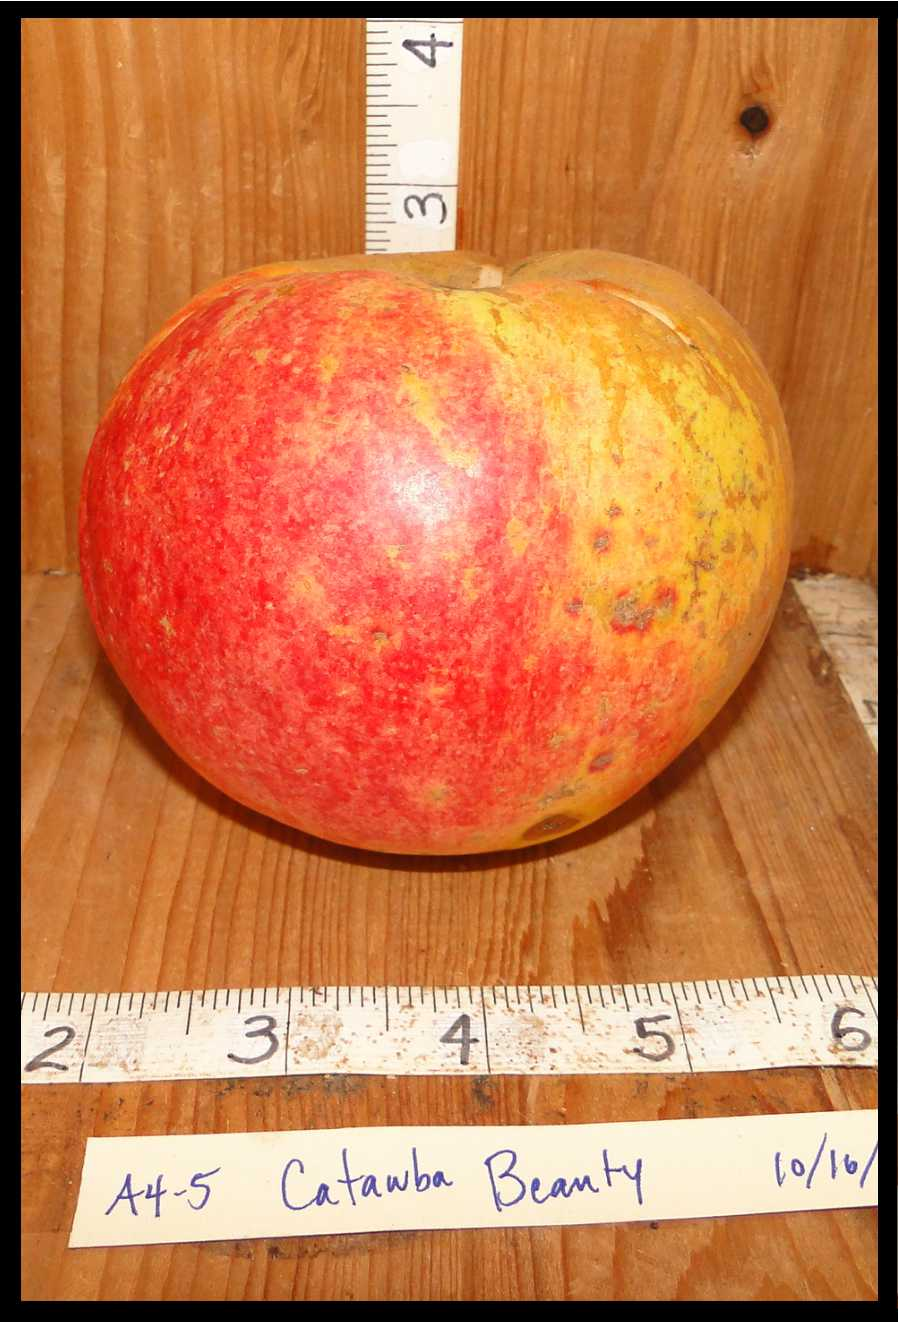 apple mottled red, yellow, and rough tan